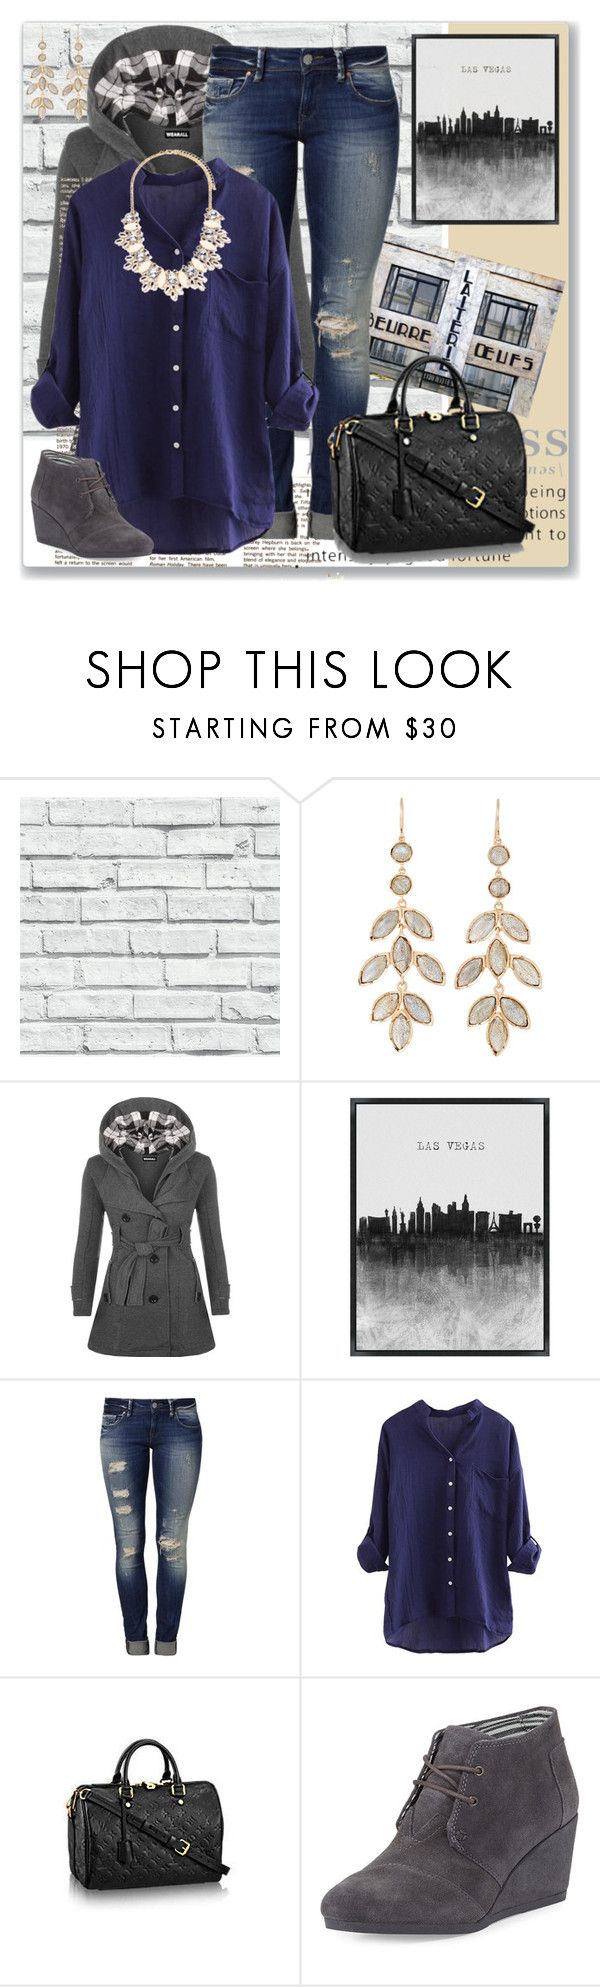 """""""Forever 21 Statement Necklace"""" by xoxomaddiegirl ❤ liked on Polyvore featuring Irene Neuwirth, WearAll, Grandin Road, Mavi, Empreinte, TOMS and Forever 21"""